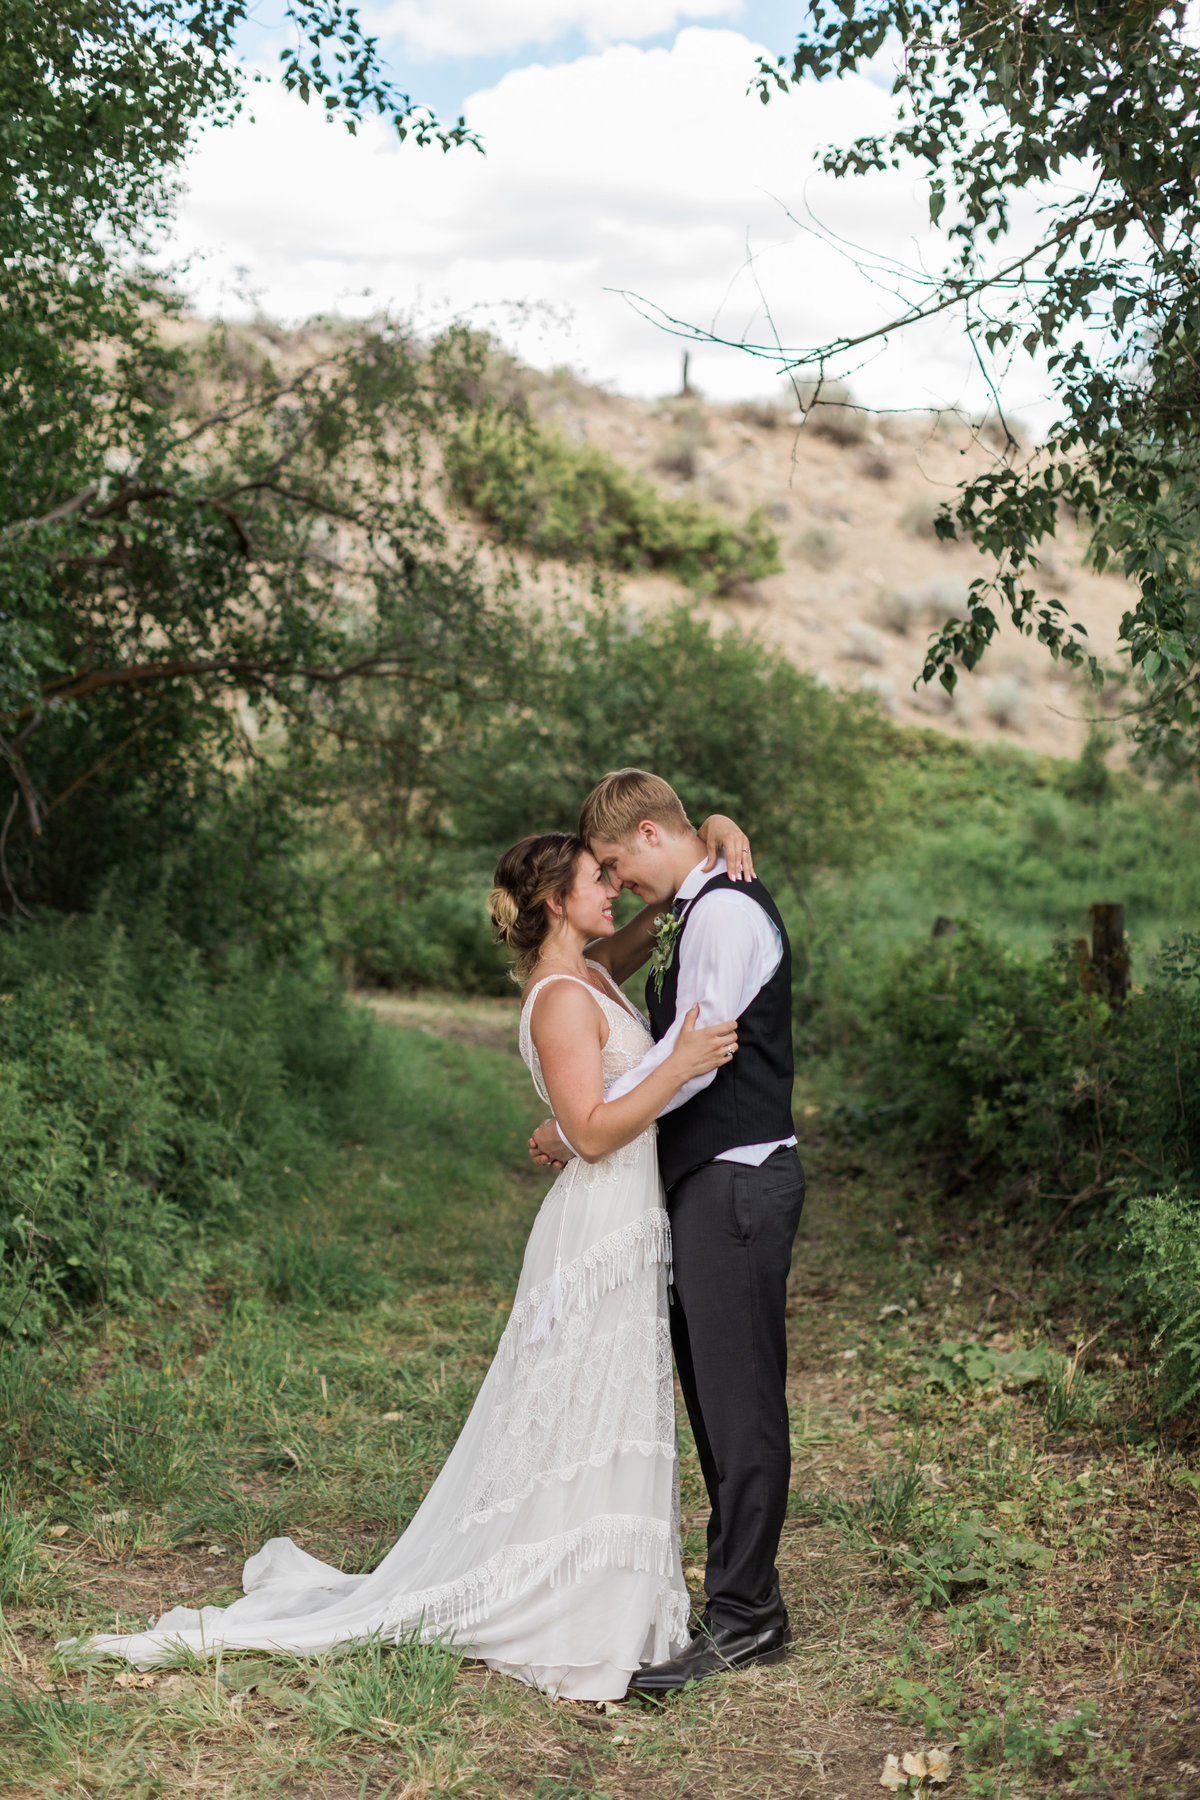 Joanna_Monger_Photography_Winthrope_wedding-1-3